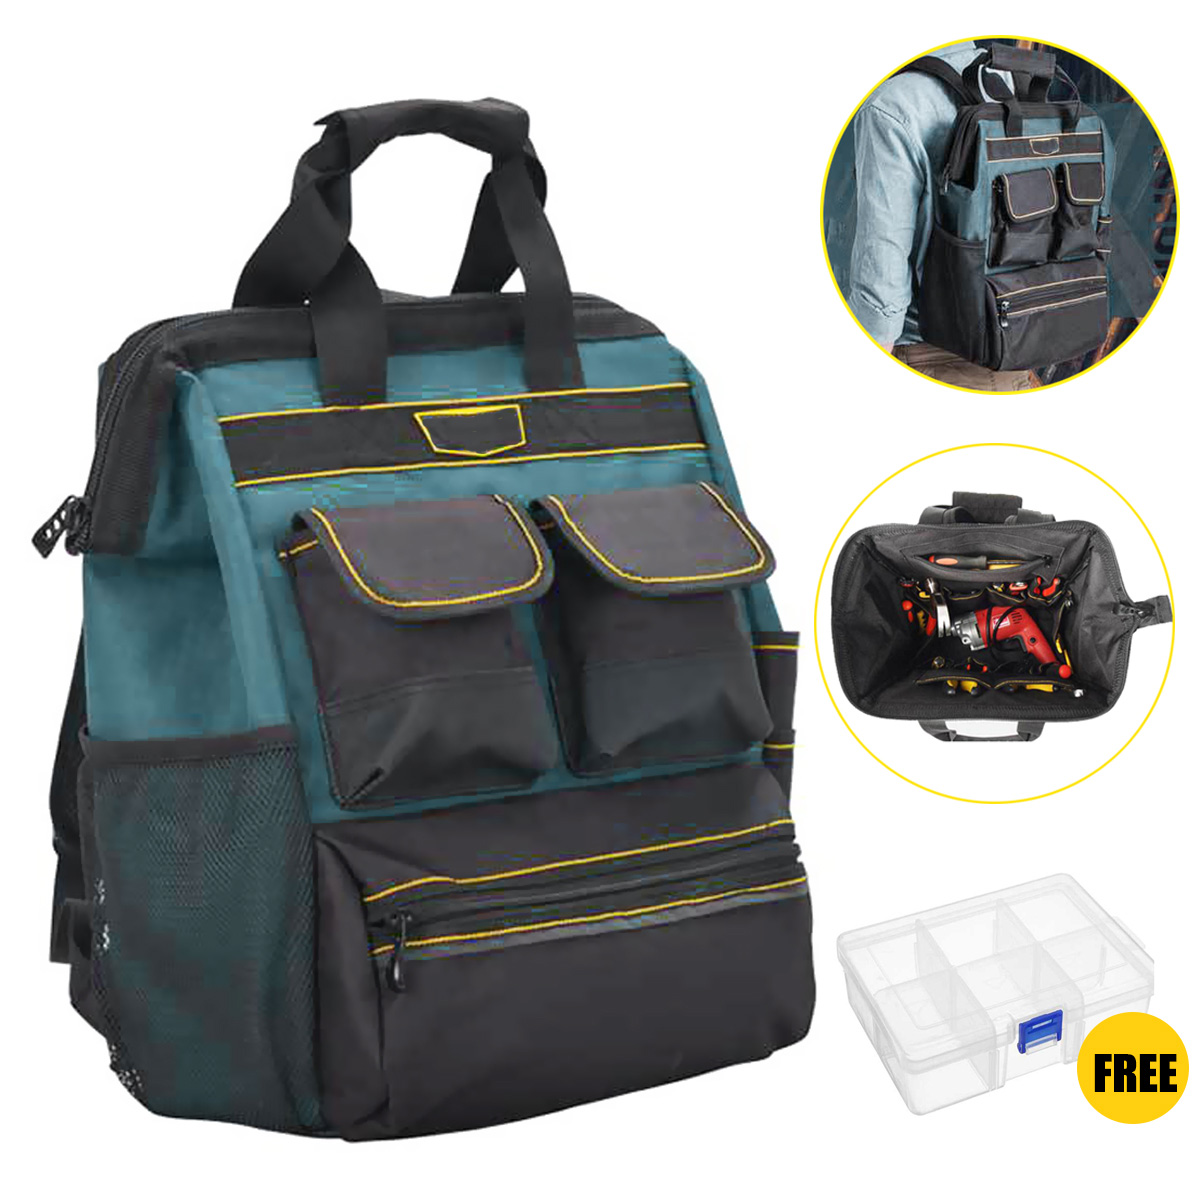 Double Shoulder Oxford Cloth Electrician Tool Backpack High-density Multifunction 21 Pockets Large Capacity Maintenance Tool Bag multi funtional tool bag waterproof hardware tool bags large double layer capacity oxford cloth electrician toolkit handbags